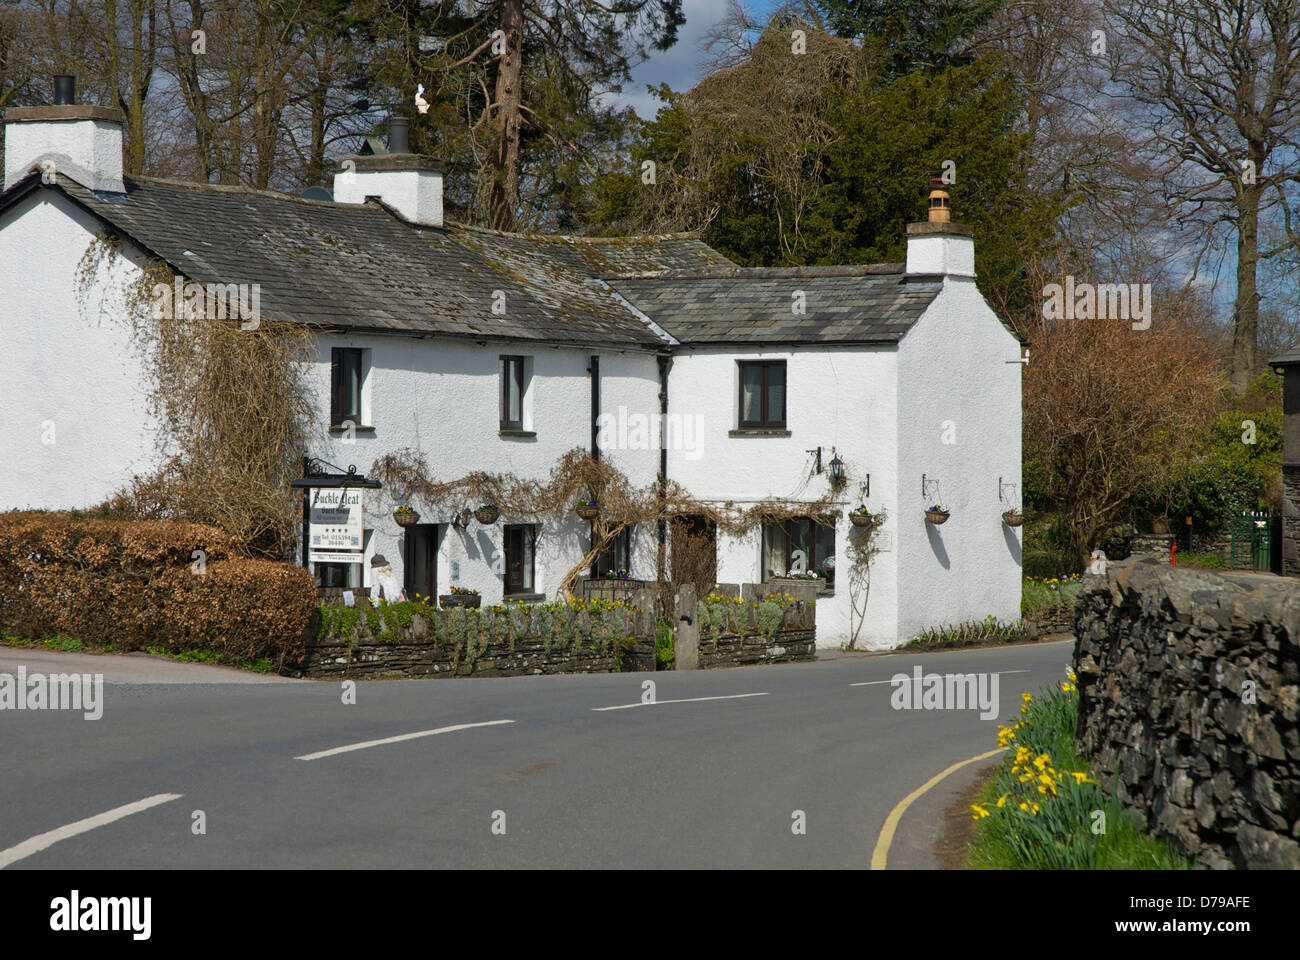 Buckle Yeat Guest House Stock Photos &- Buckle Yeat Guest House ...